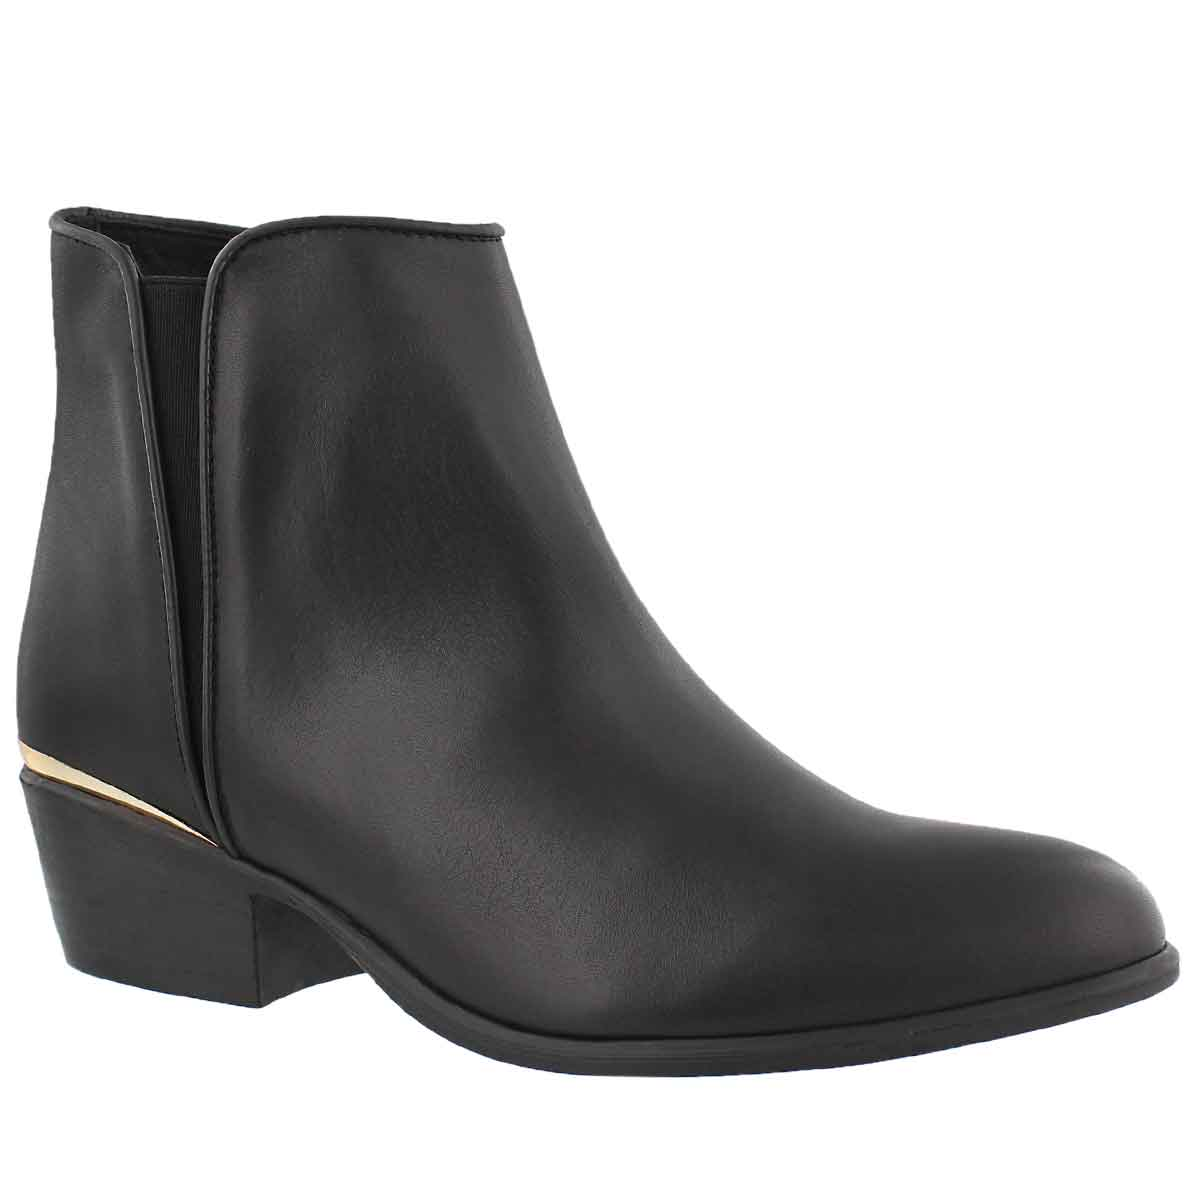 Women's NOBLE black leather ankle bootie